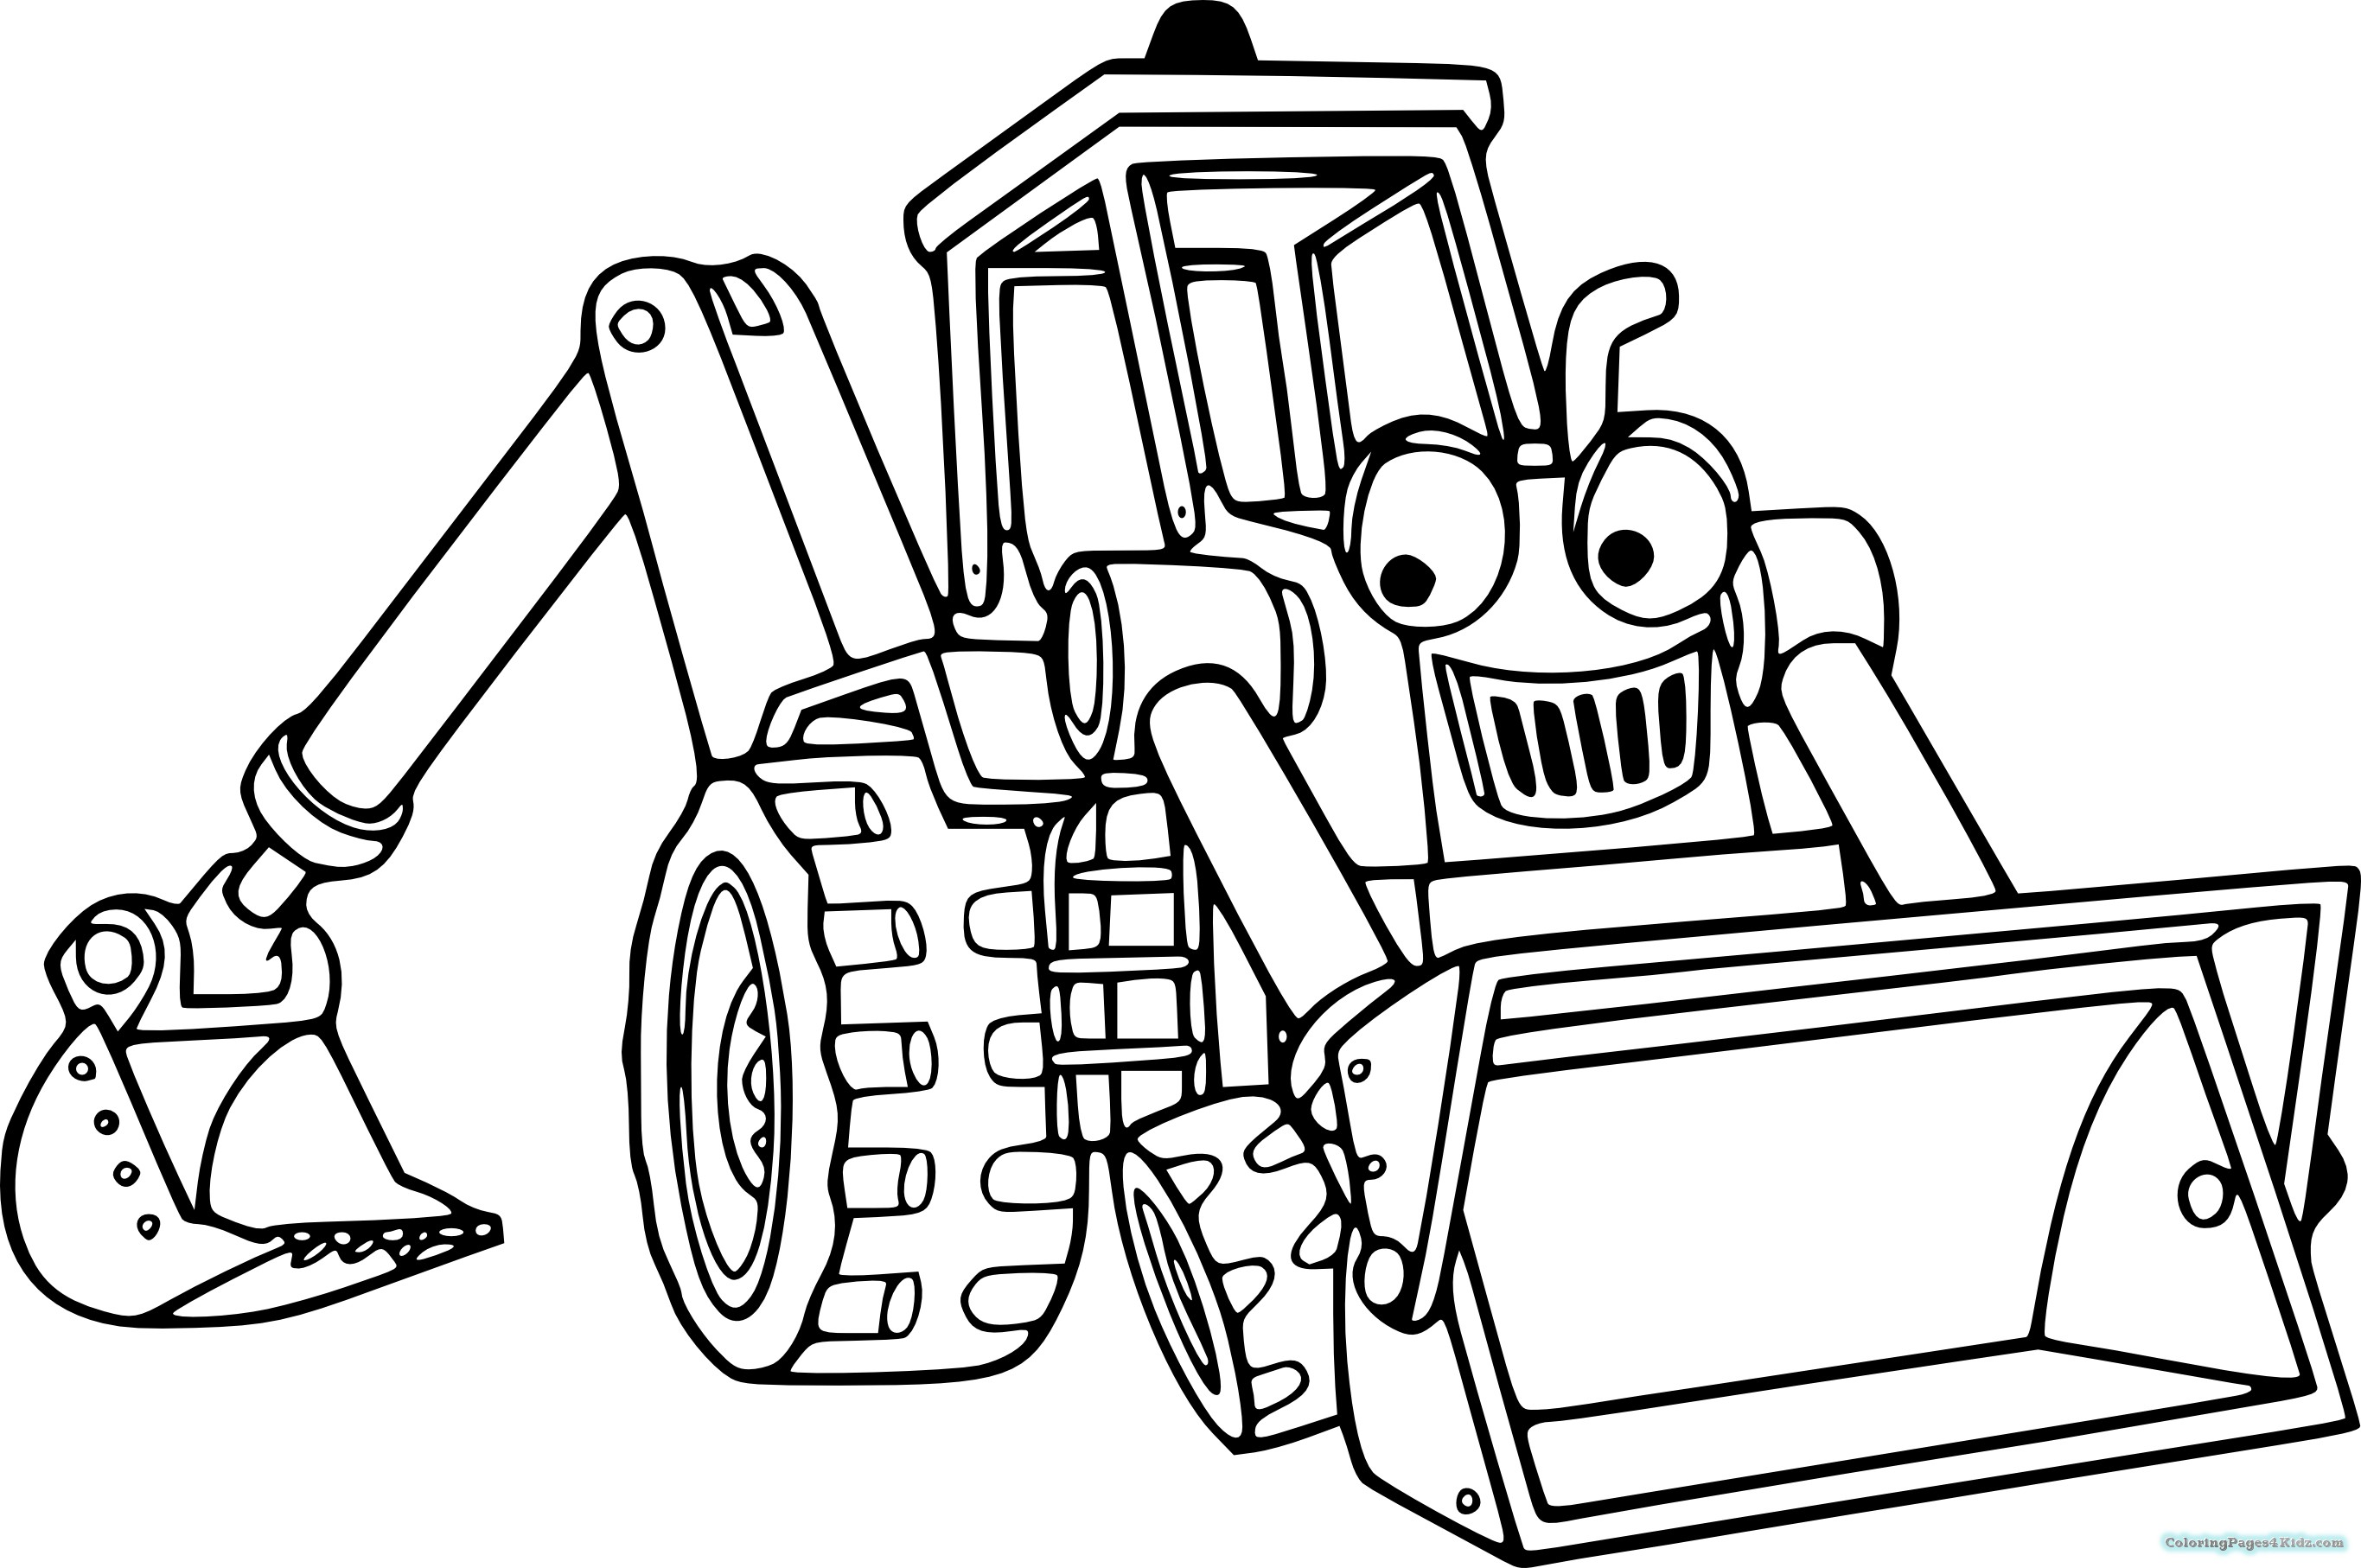 printable pictures of tractors printable john deere coloring pages for kids printable pictures of tractors